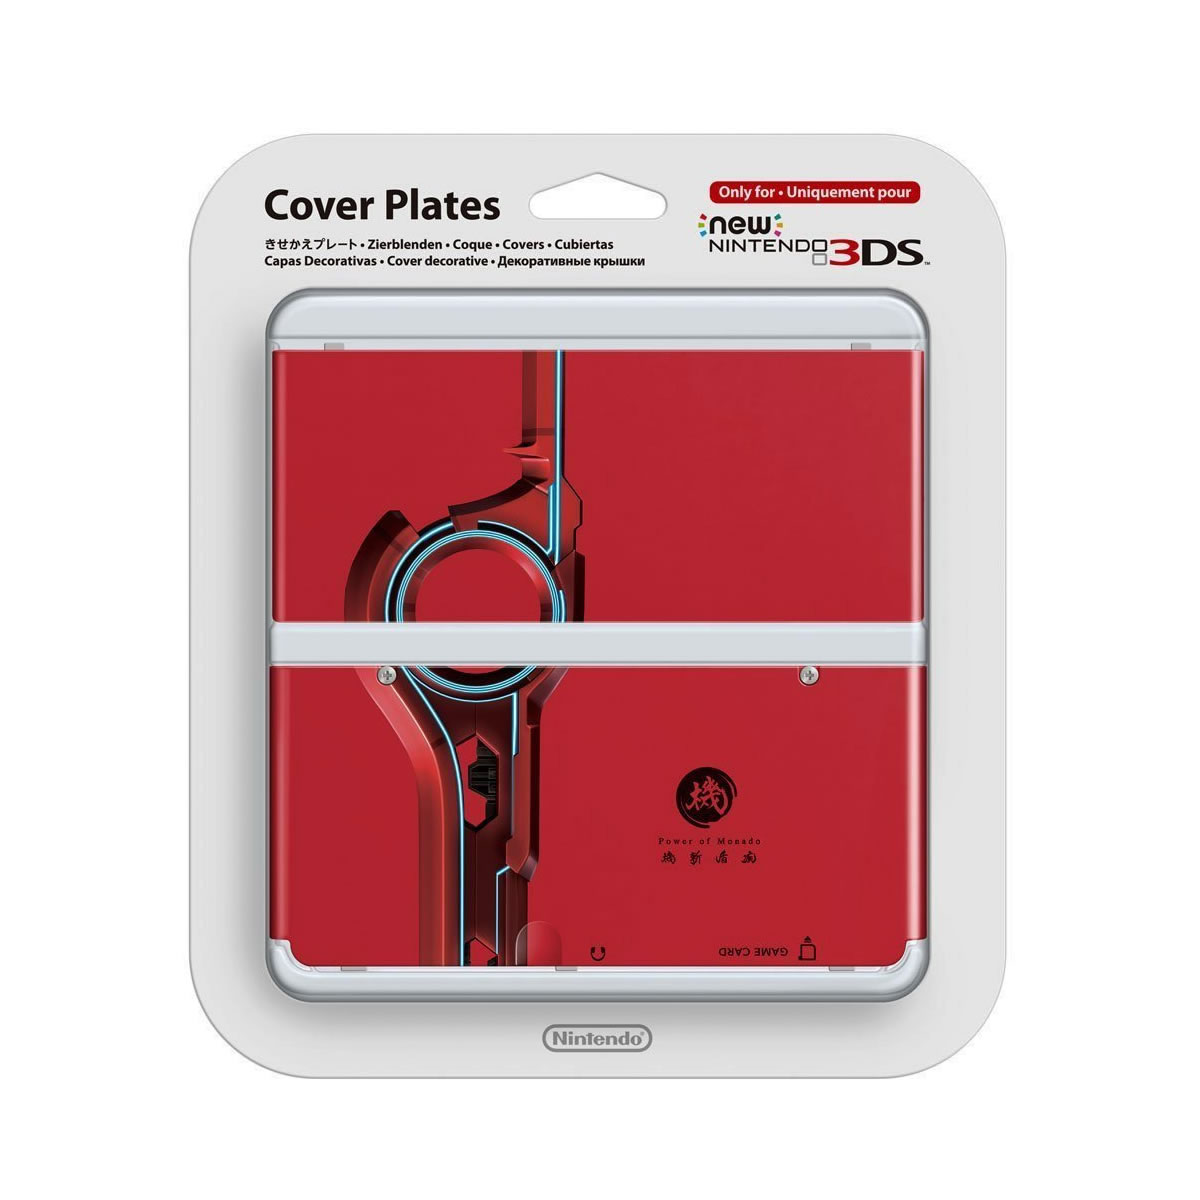 NEW NINTENDO 3DS COVERPLATE 025 Xenoblade (New 3DS)